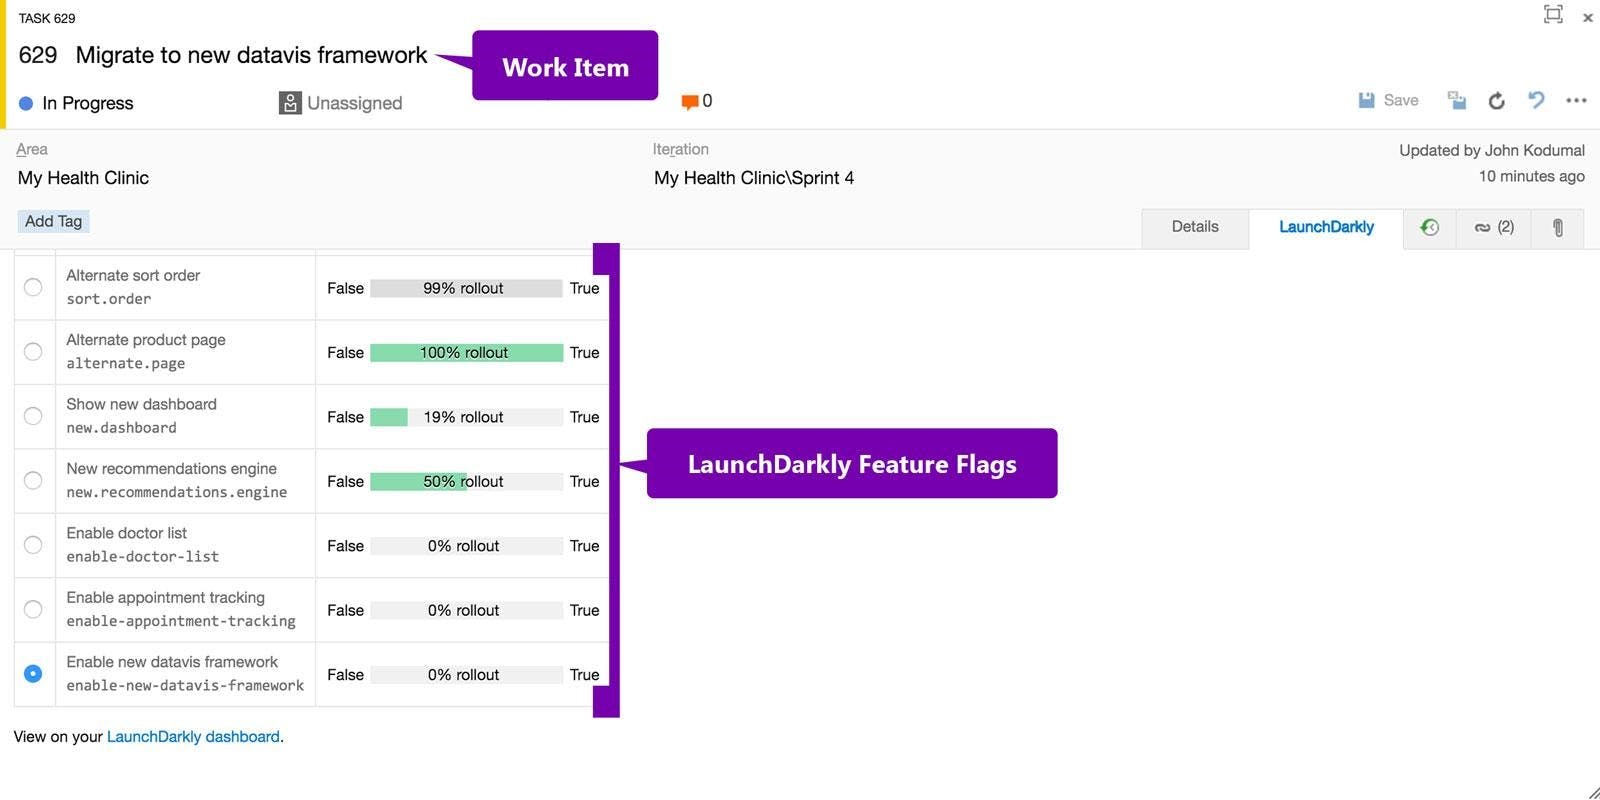 LaunchDarkly and Microsoft Visual Studio Team Services (VSTS) Feature Flags / Toggles for release management work items